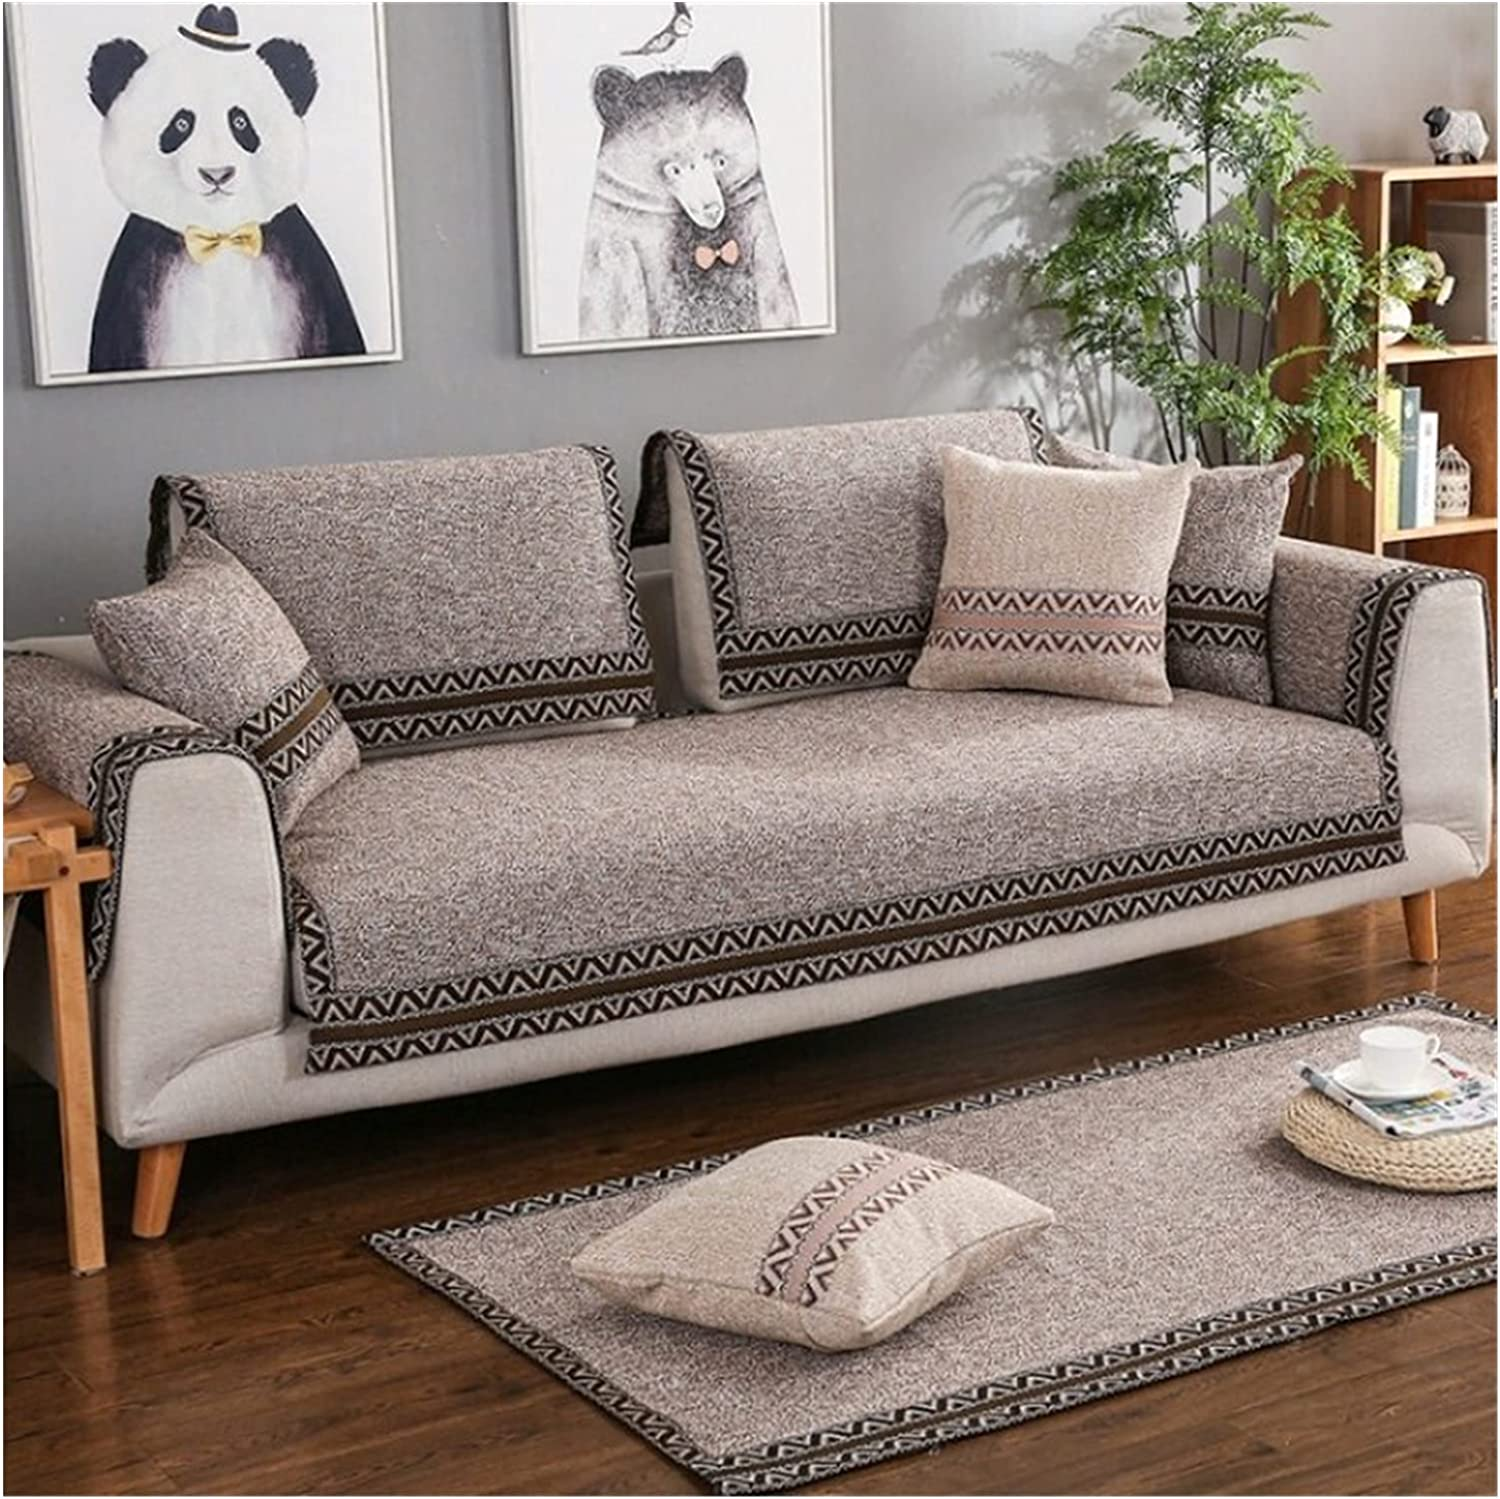 XUELINGTANG 1 Max 83% OFF Free shipping Piece Cotton Linen Cover Modern Fabric Style Sofa